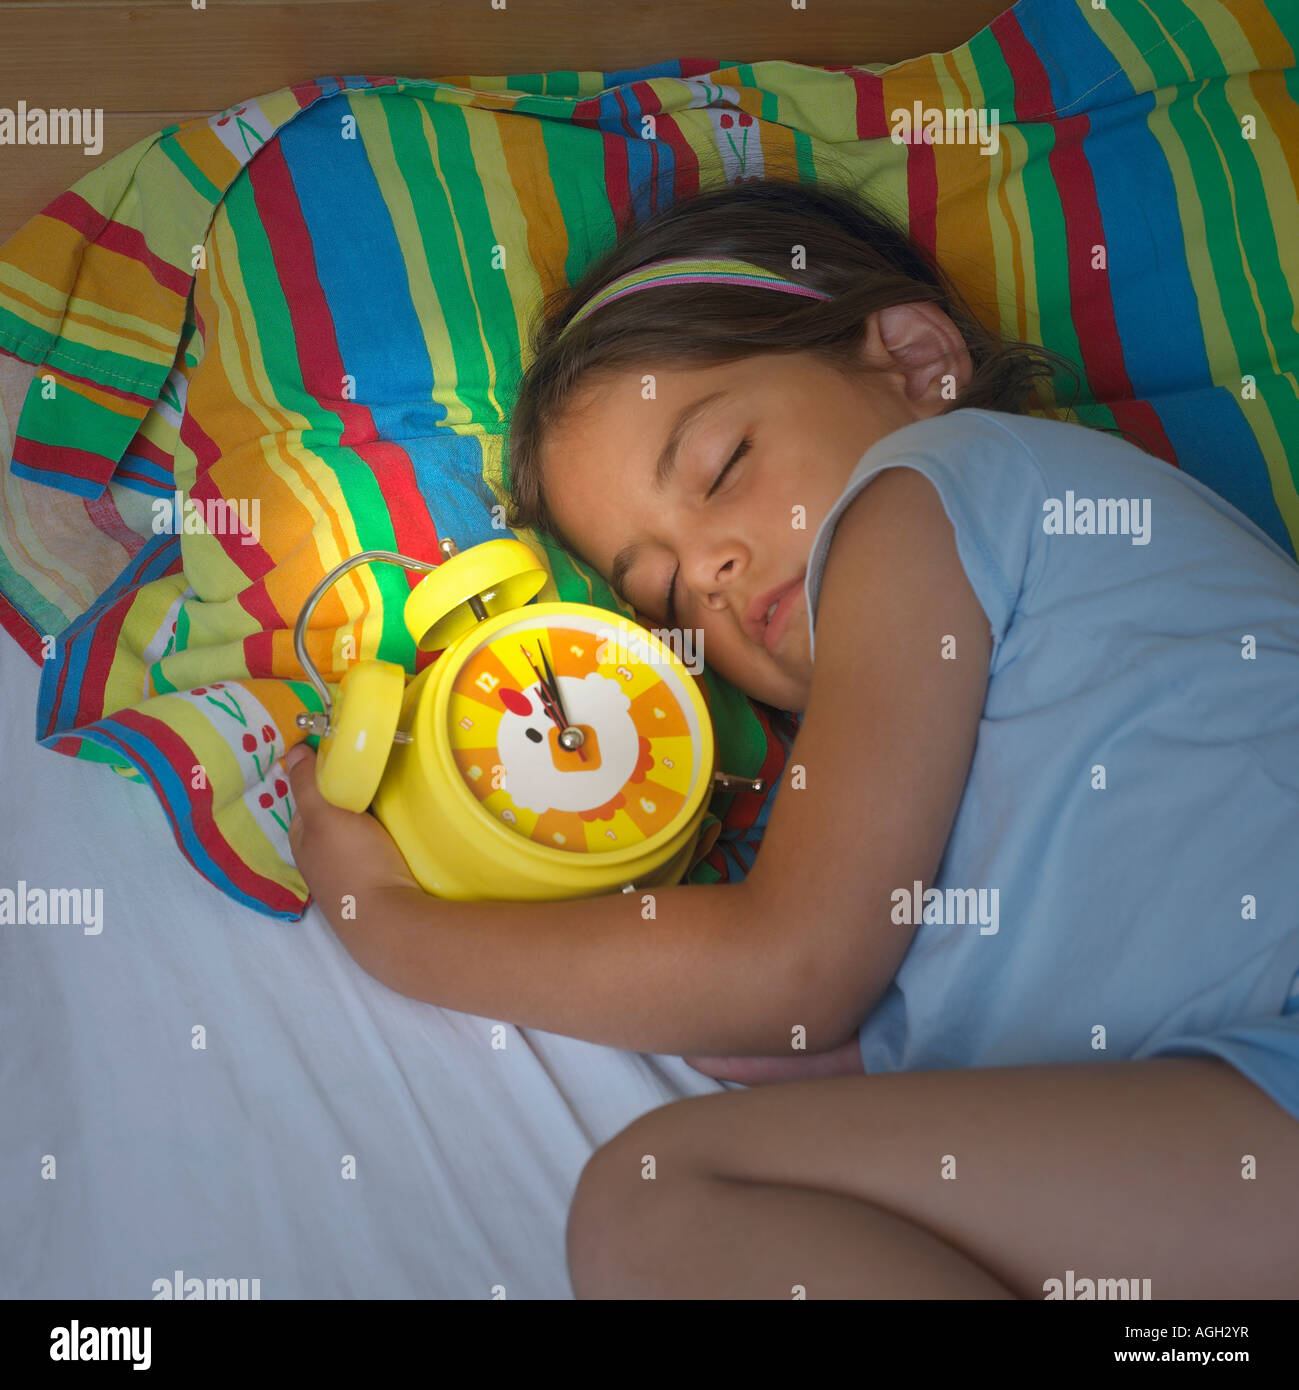 Image result for 5 year old girl sleeping